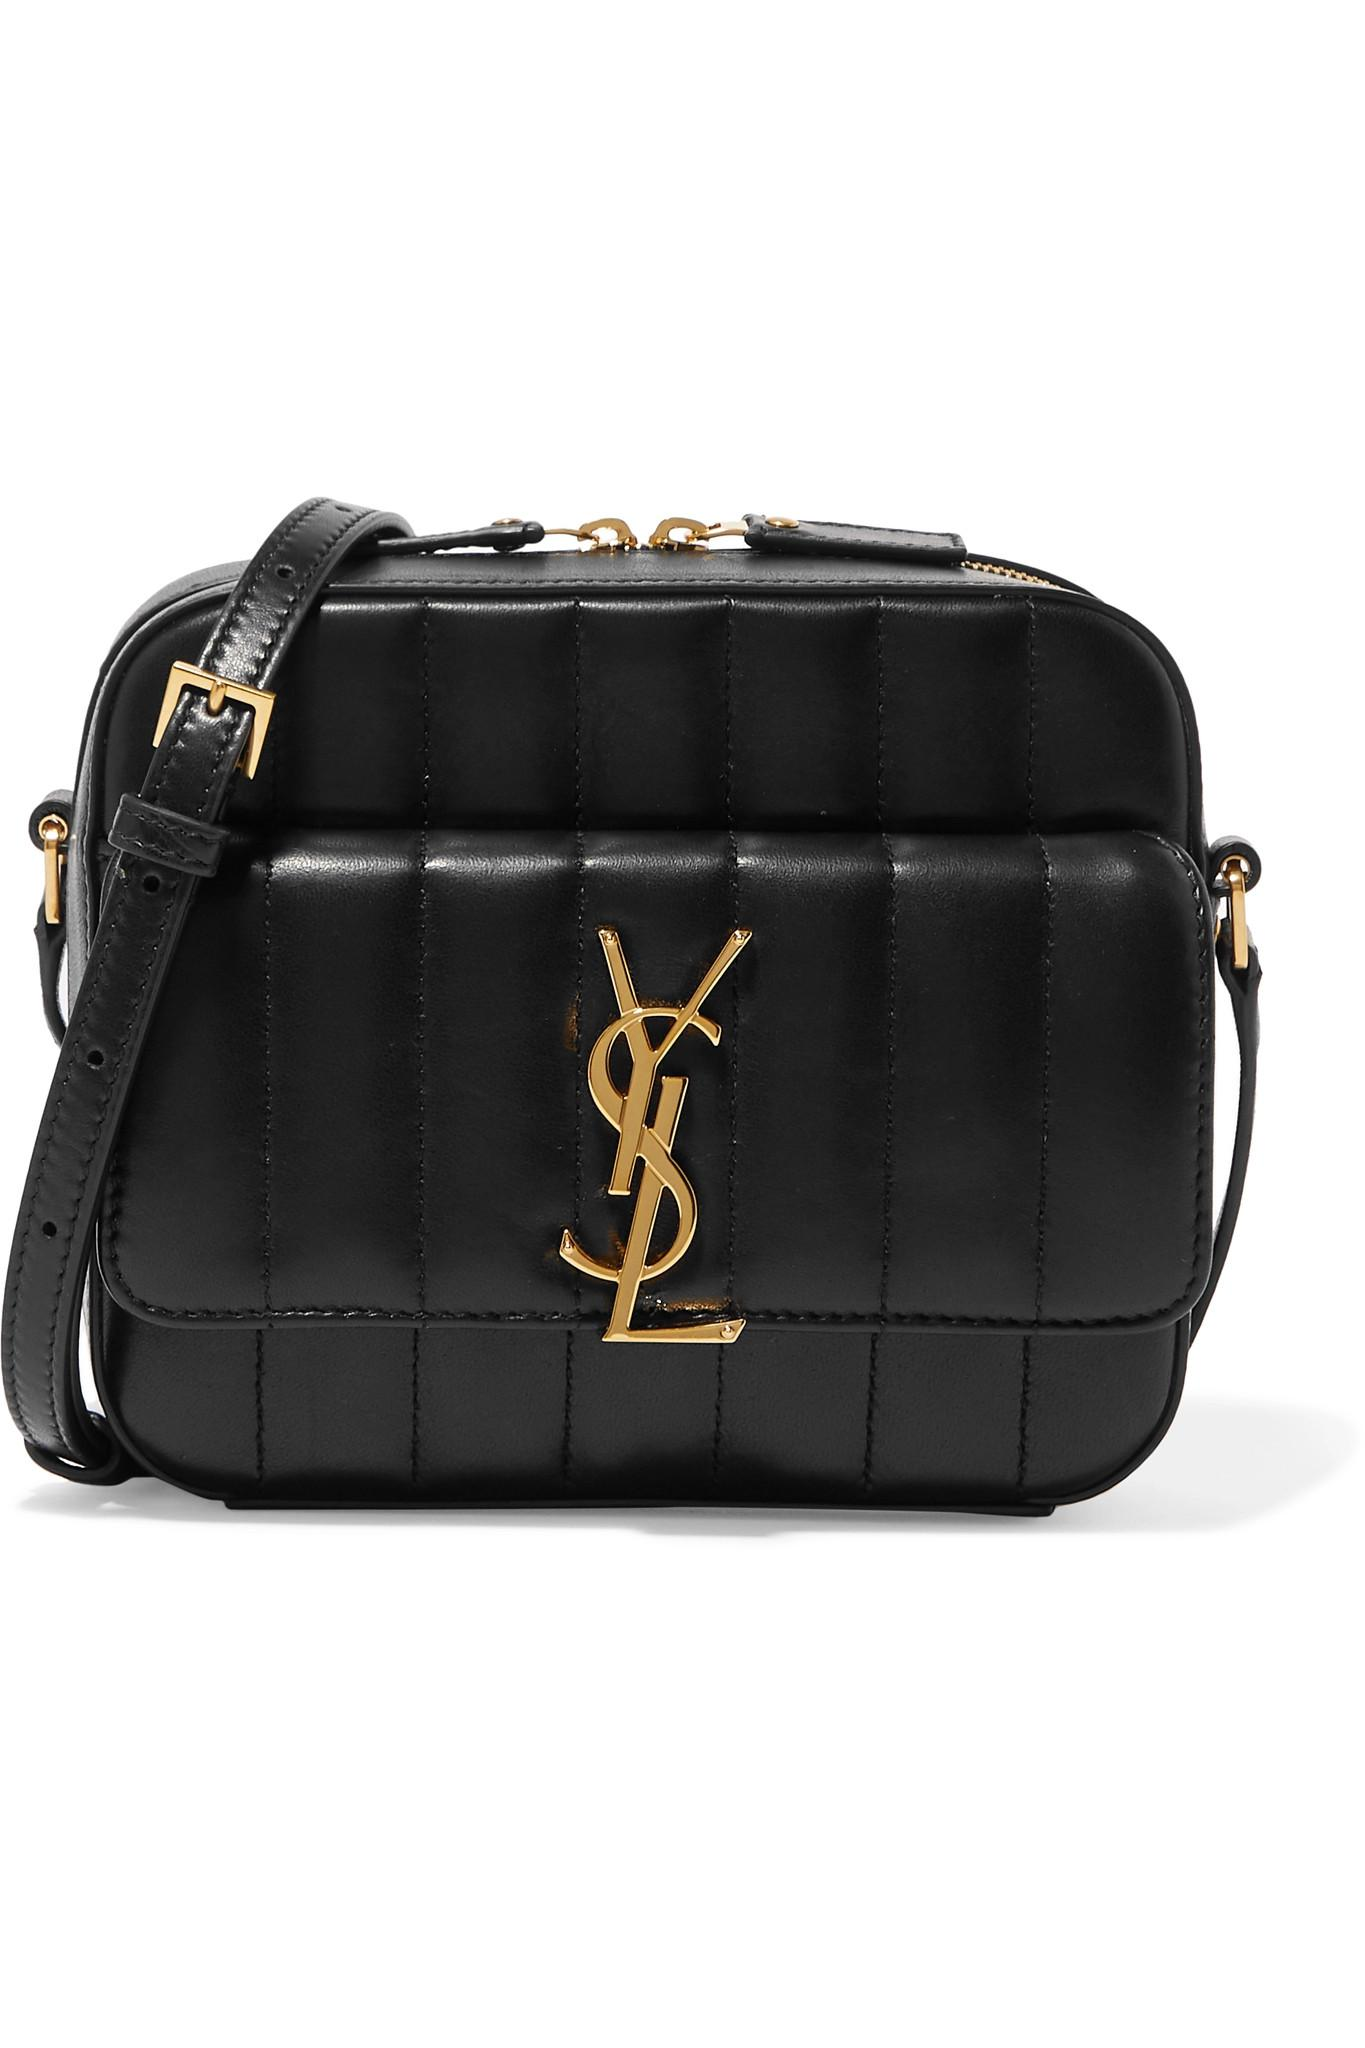 1f0789b0323e Lyst - Saint Laurent Vicky Quilted Leather Camera Bag in Black